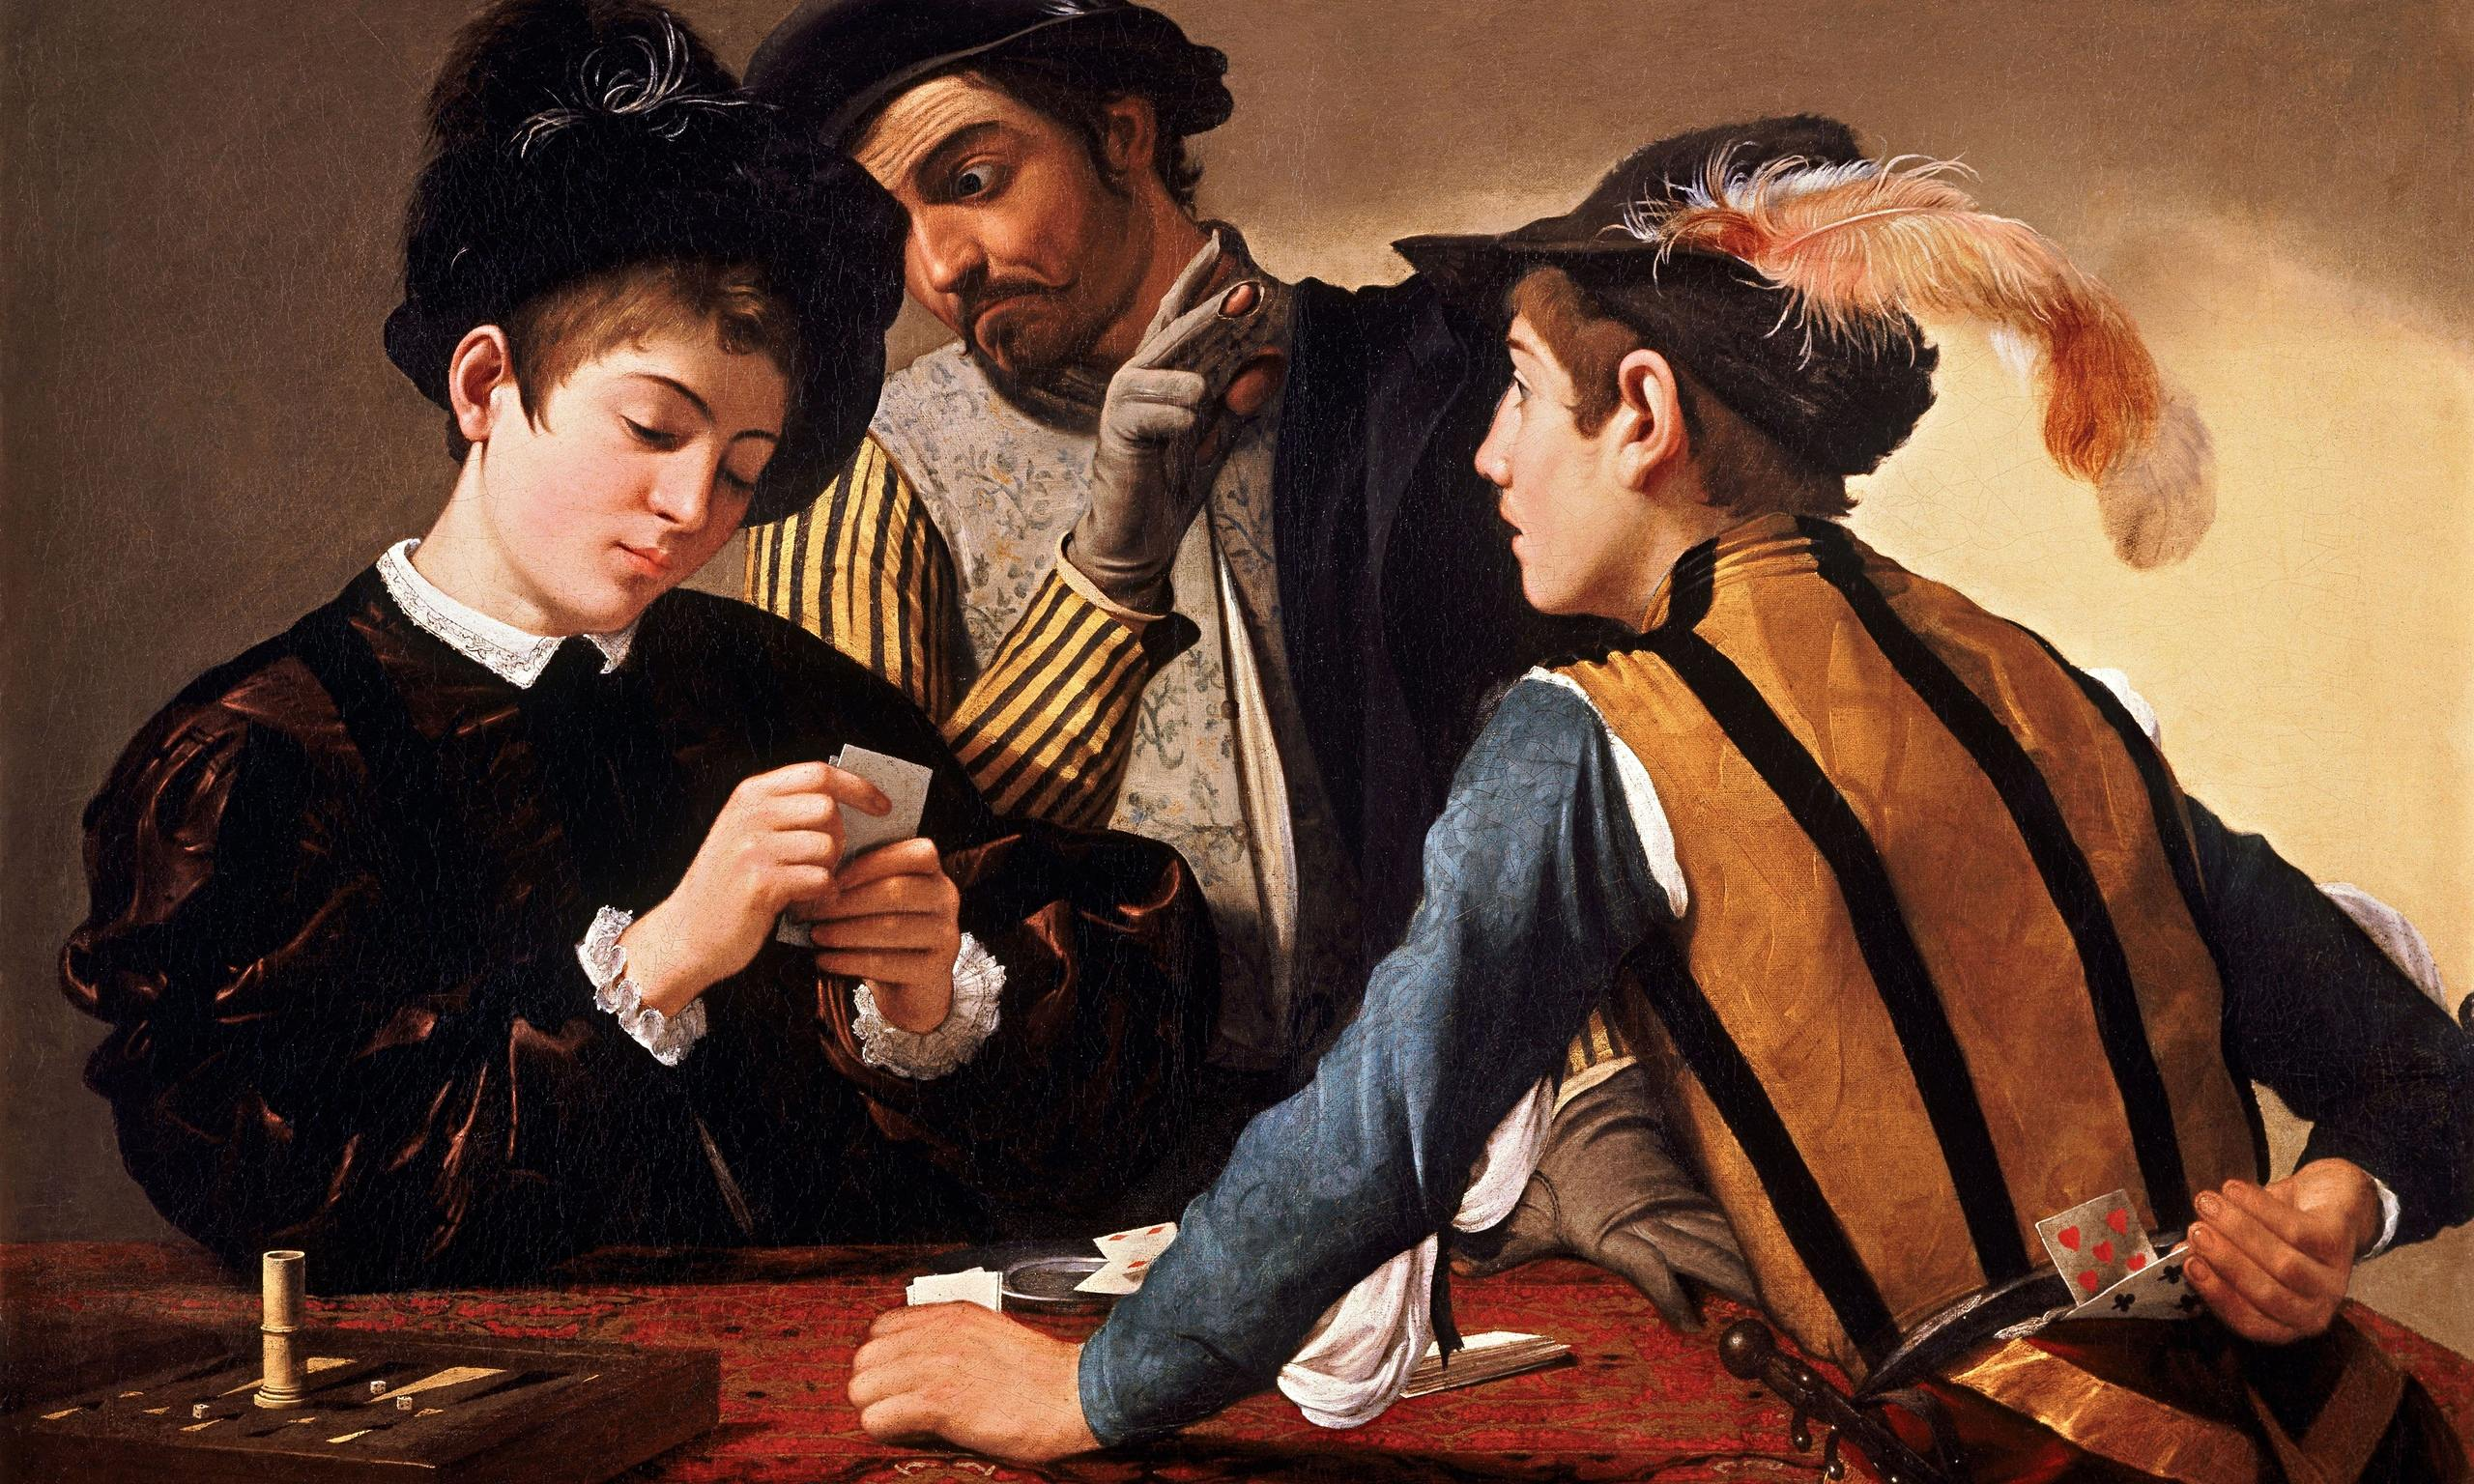 What Can Filmmakers Learn from Caravaggio, the Master of